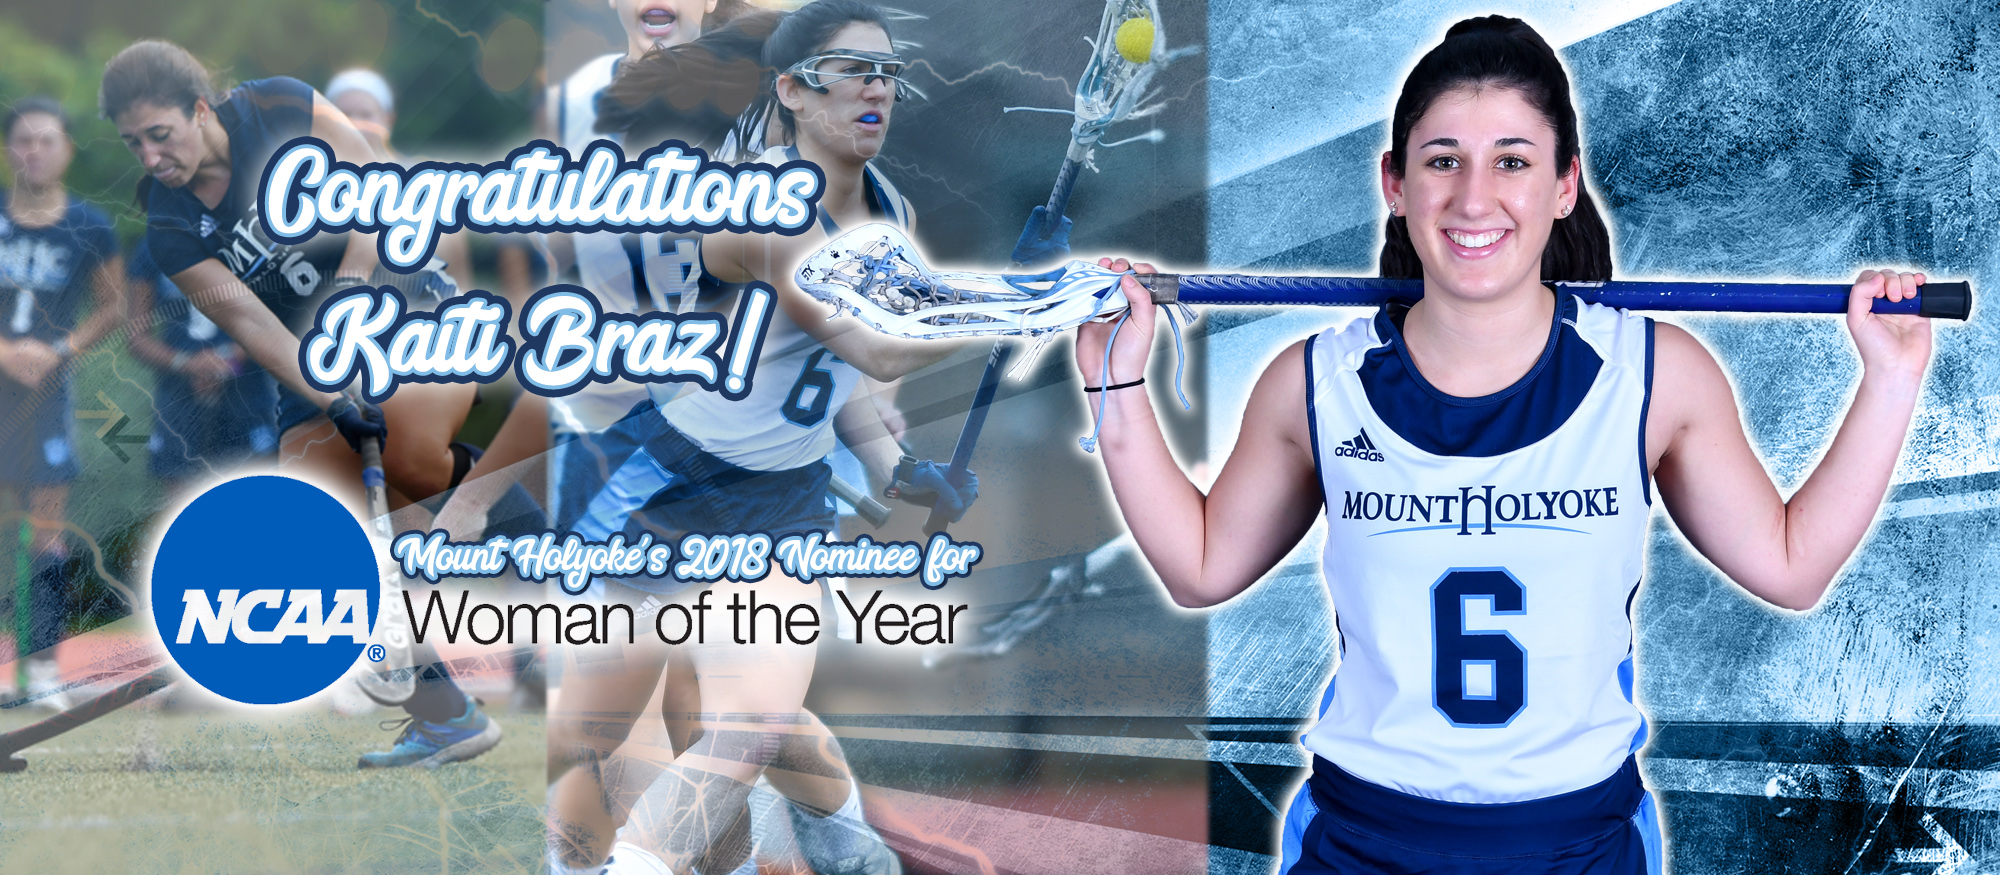 Photo depicting several images of former Lyons field hockey/lacrosse standout Kaitlin Braz '18 who was named MHC's selection for the 2018 NCAA Woman of the Year Award.